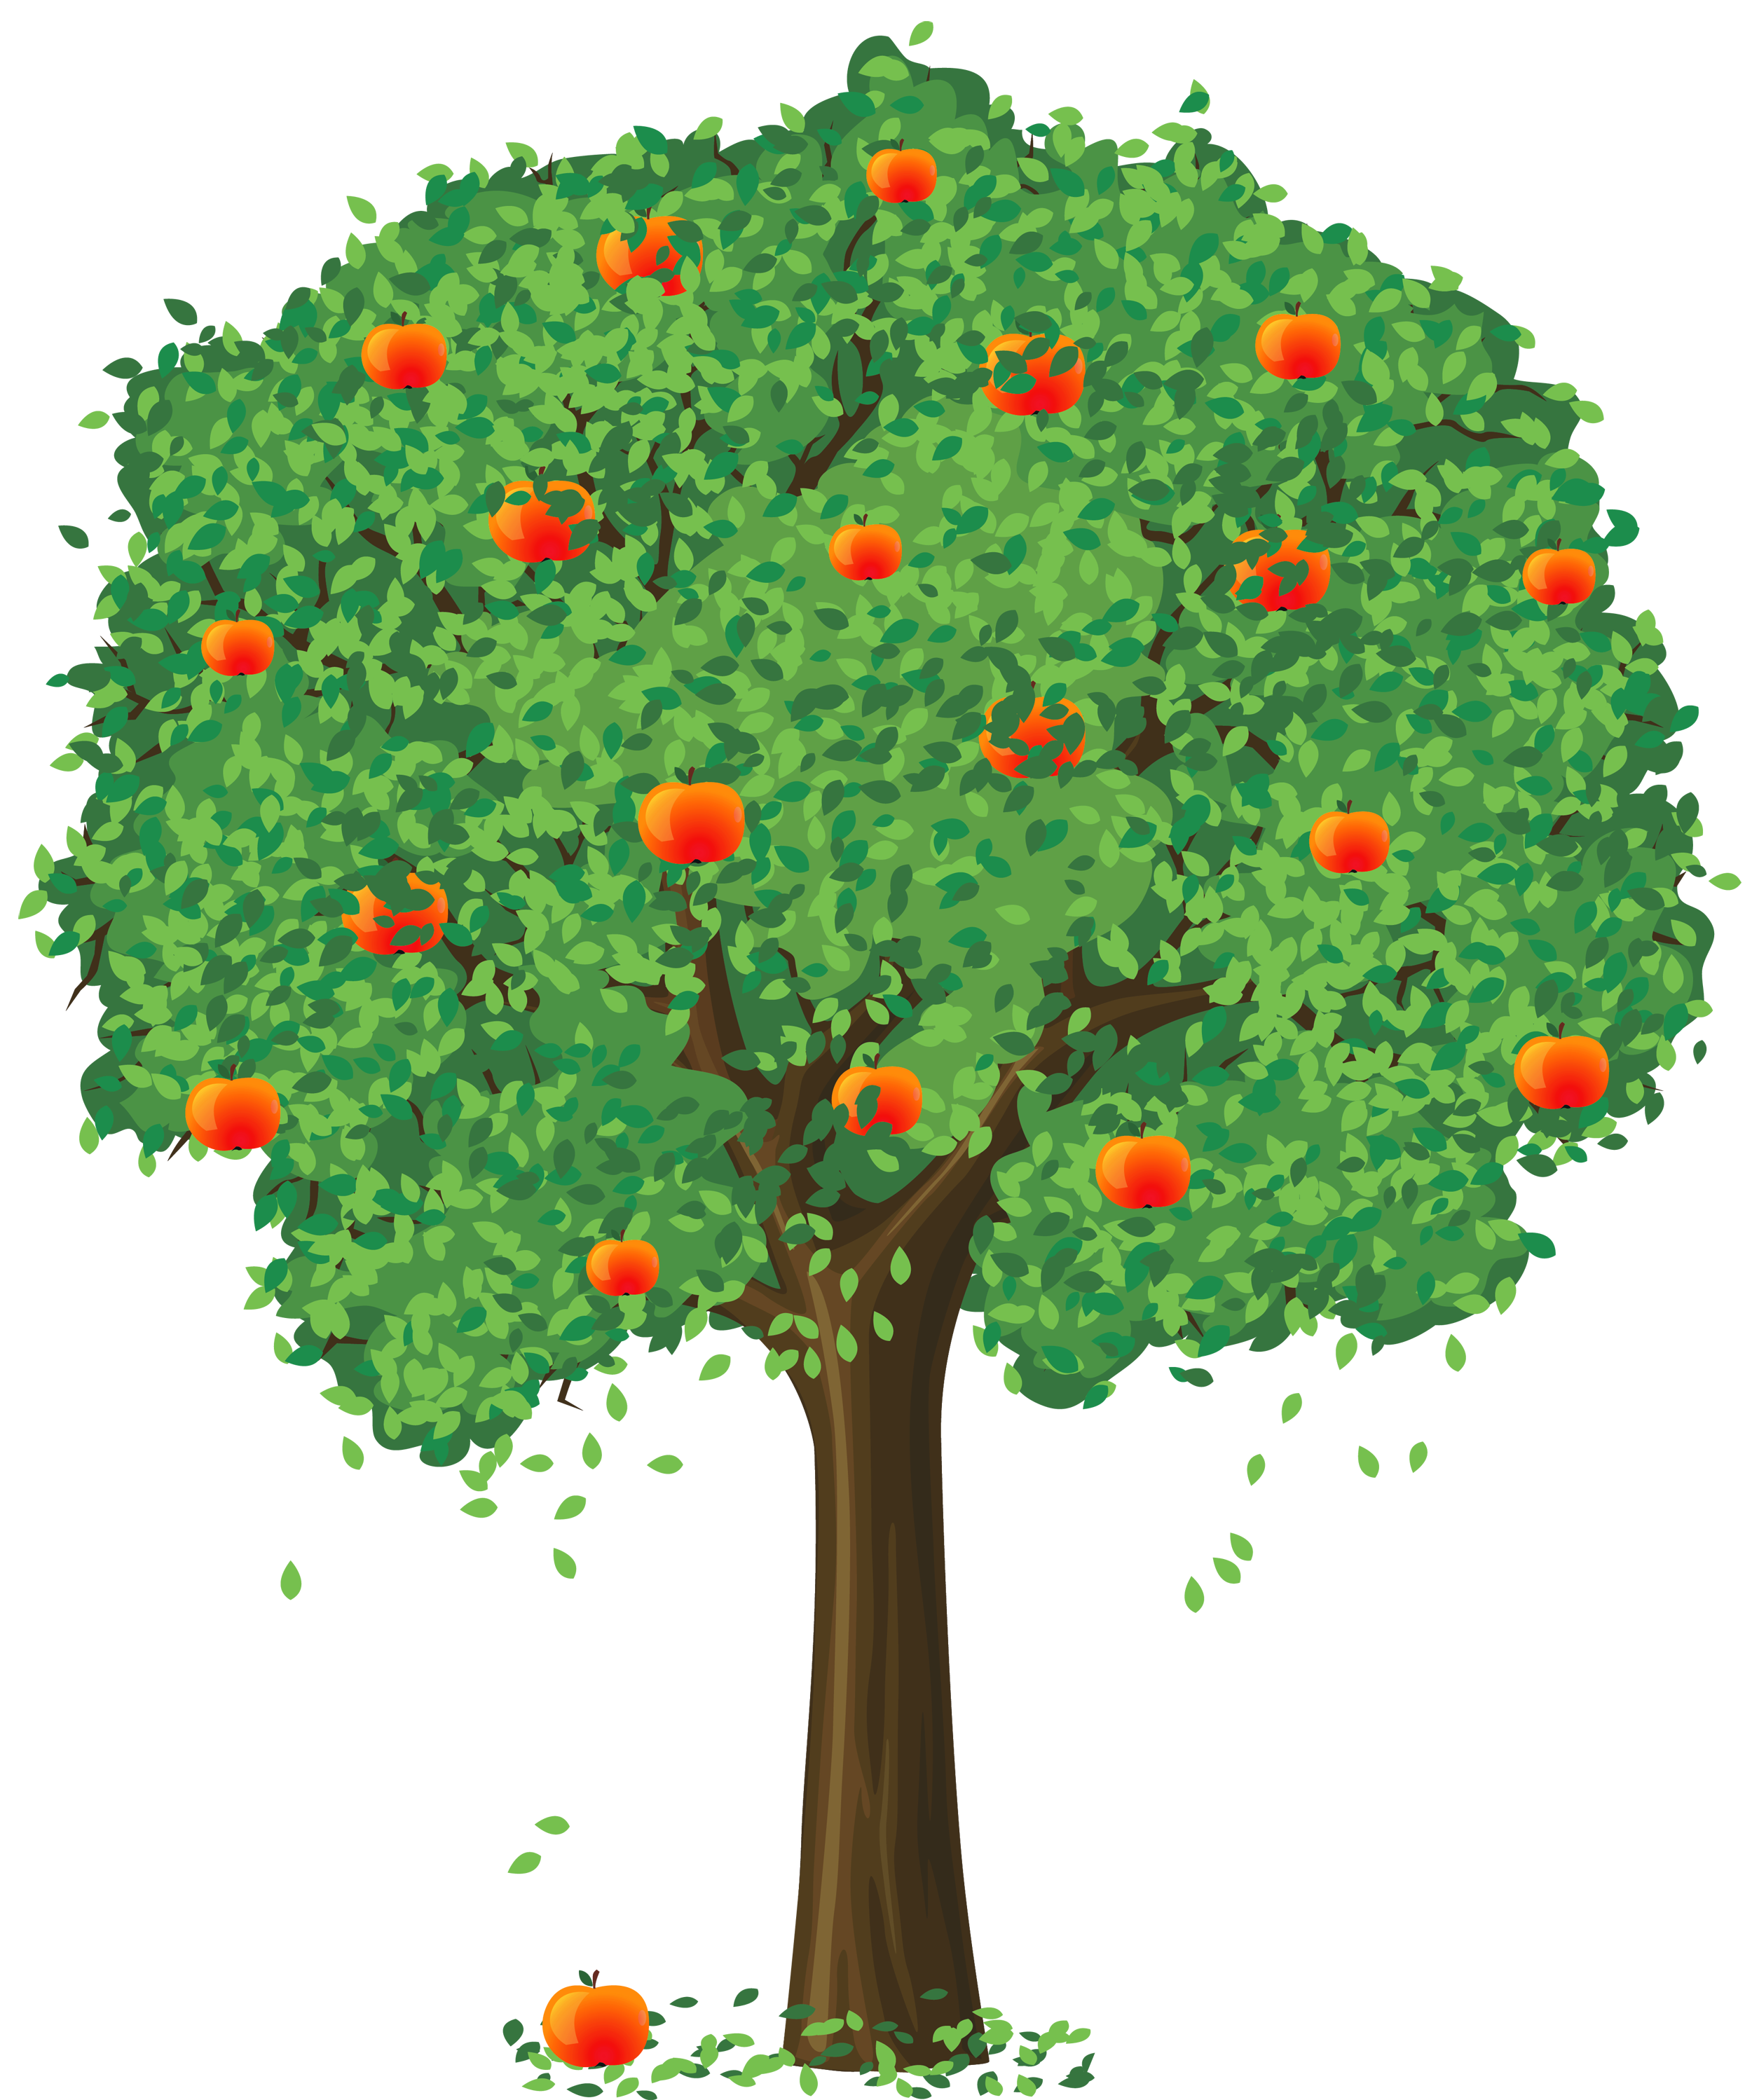 Clipart apple seeds jpg library download Apple Tree Clipart Png | Letters Format jpg library download